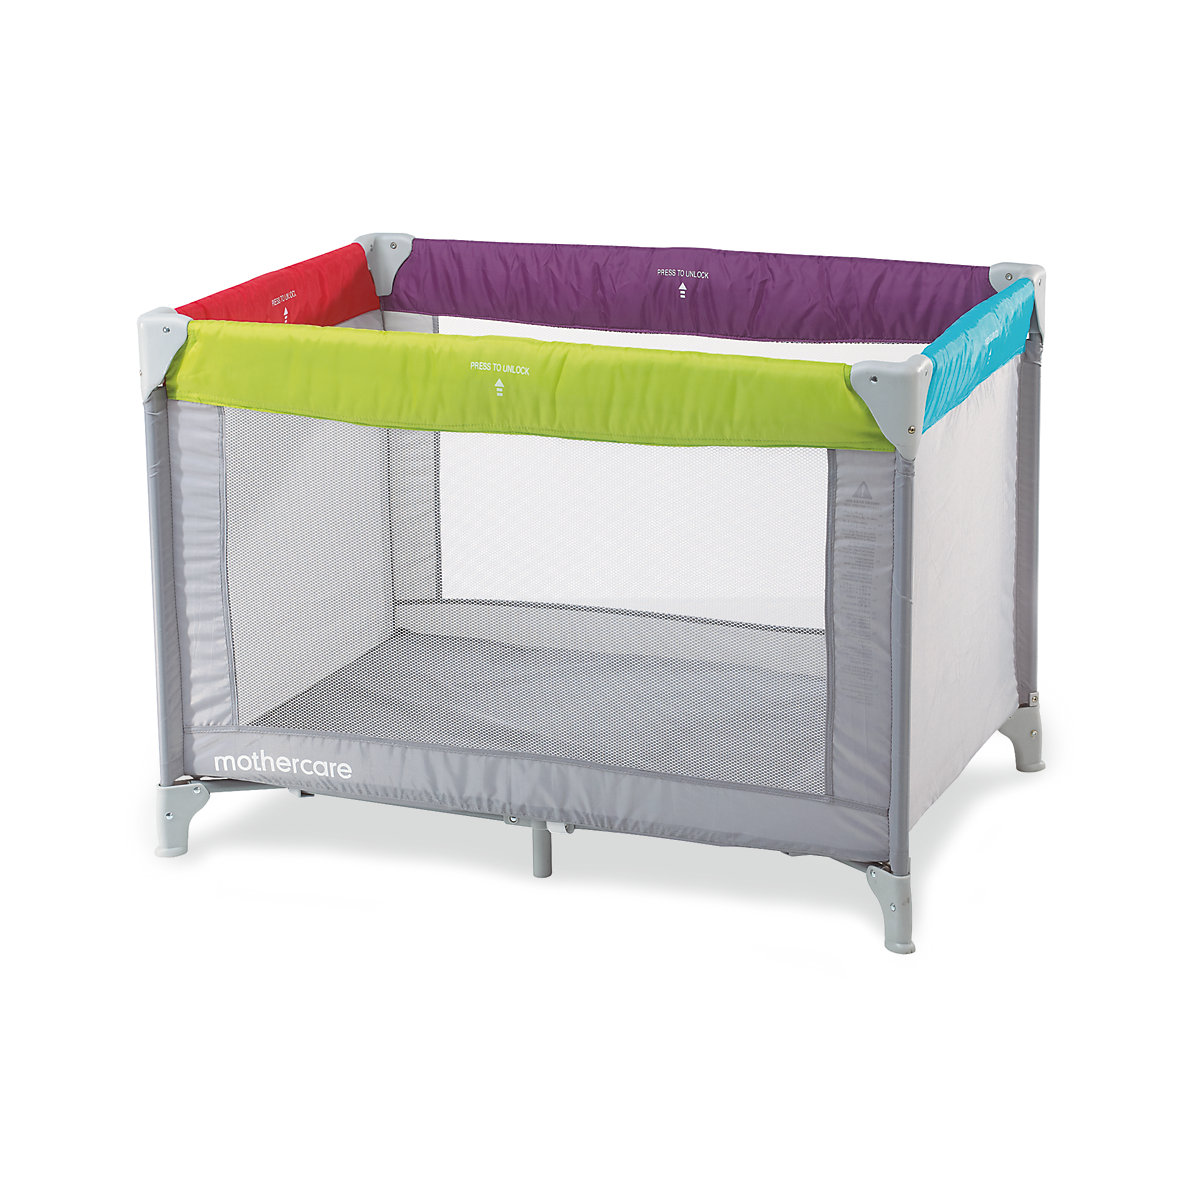 Travel Cot Mattress Tesco: Travel Cots Available From Travelcot.co.uk